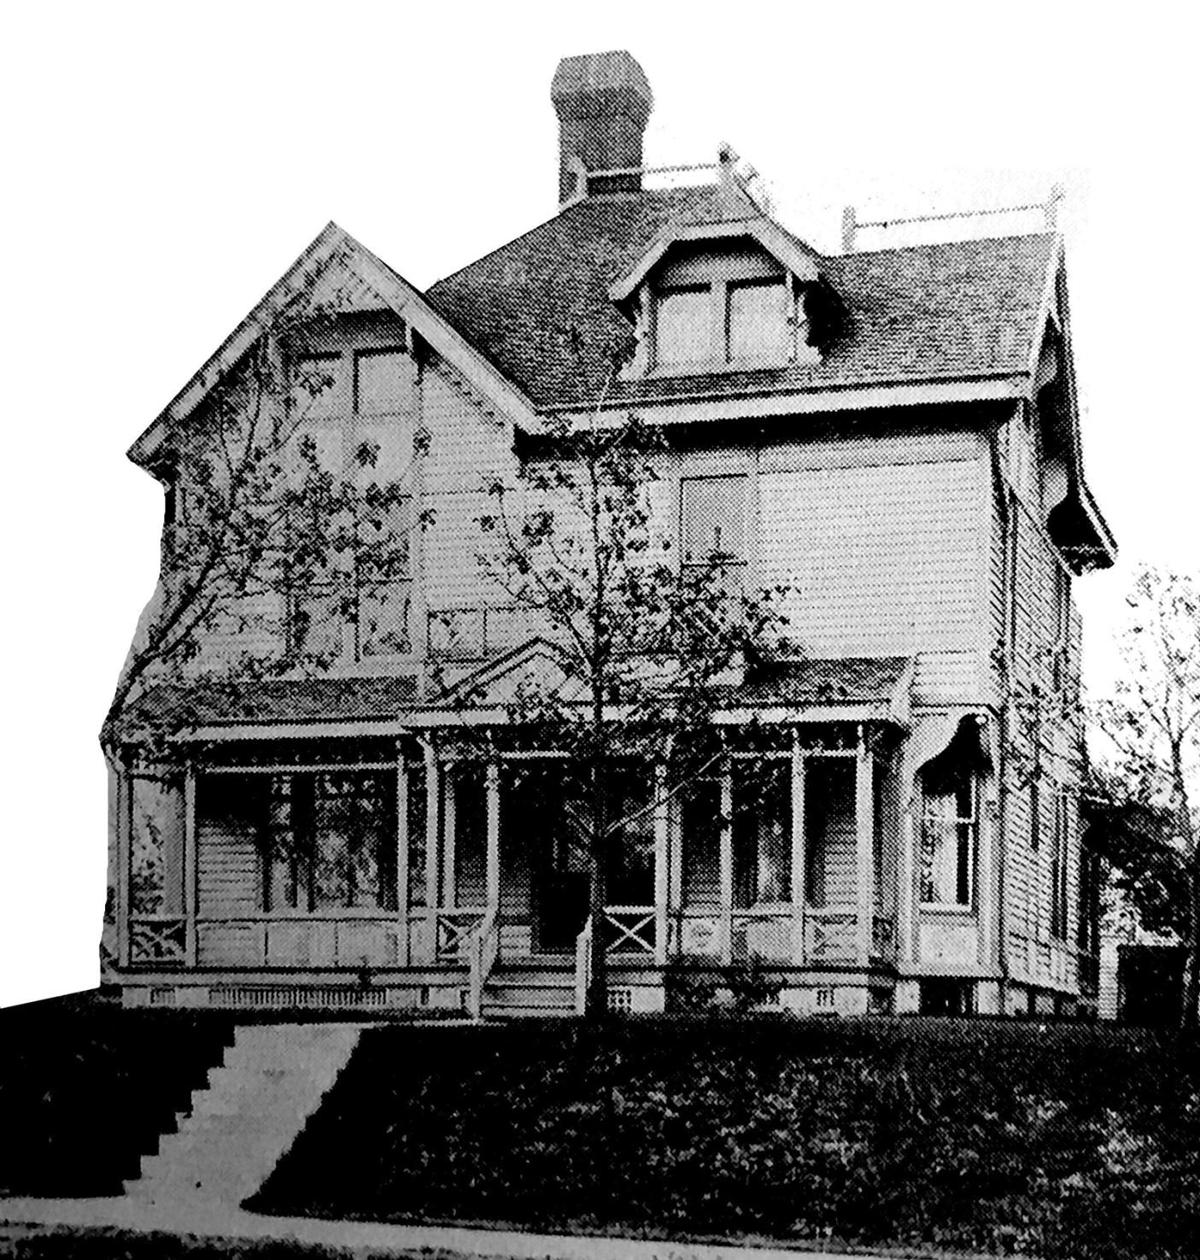 Capt Bernard Smith Home 120 E Washington Monticello.jpg